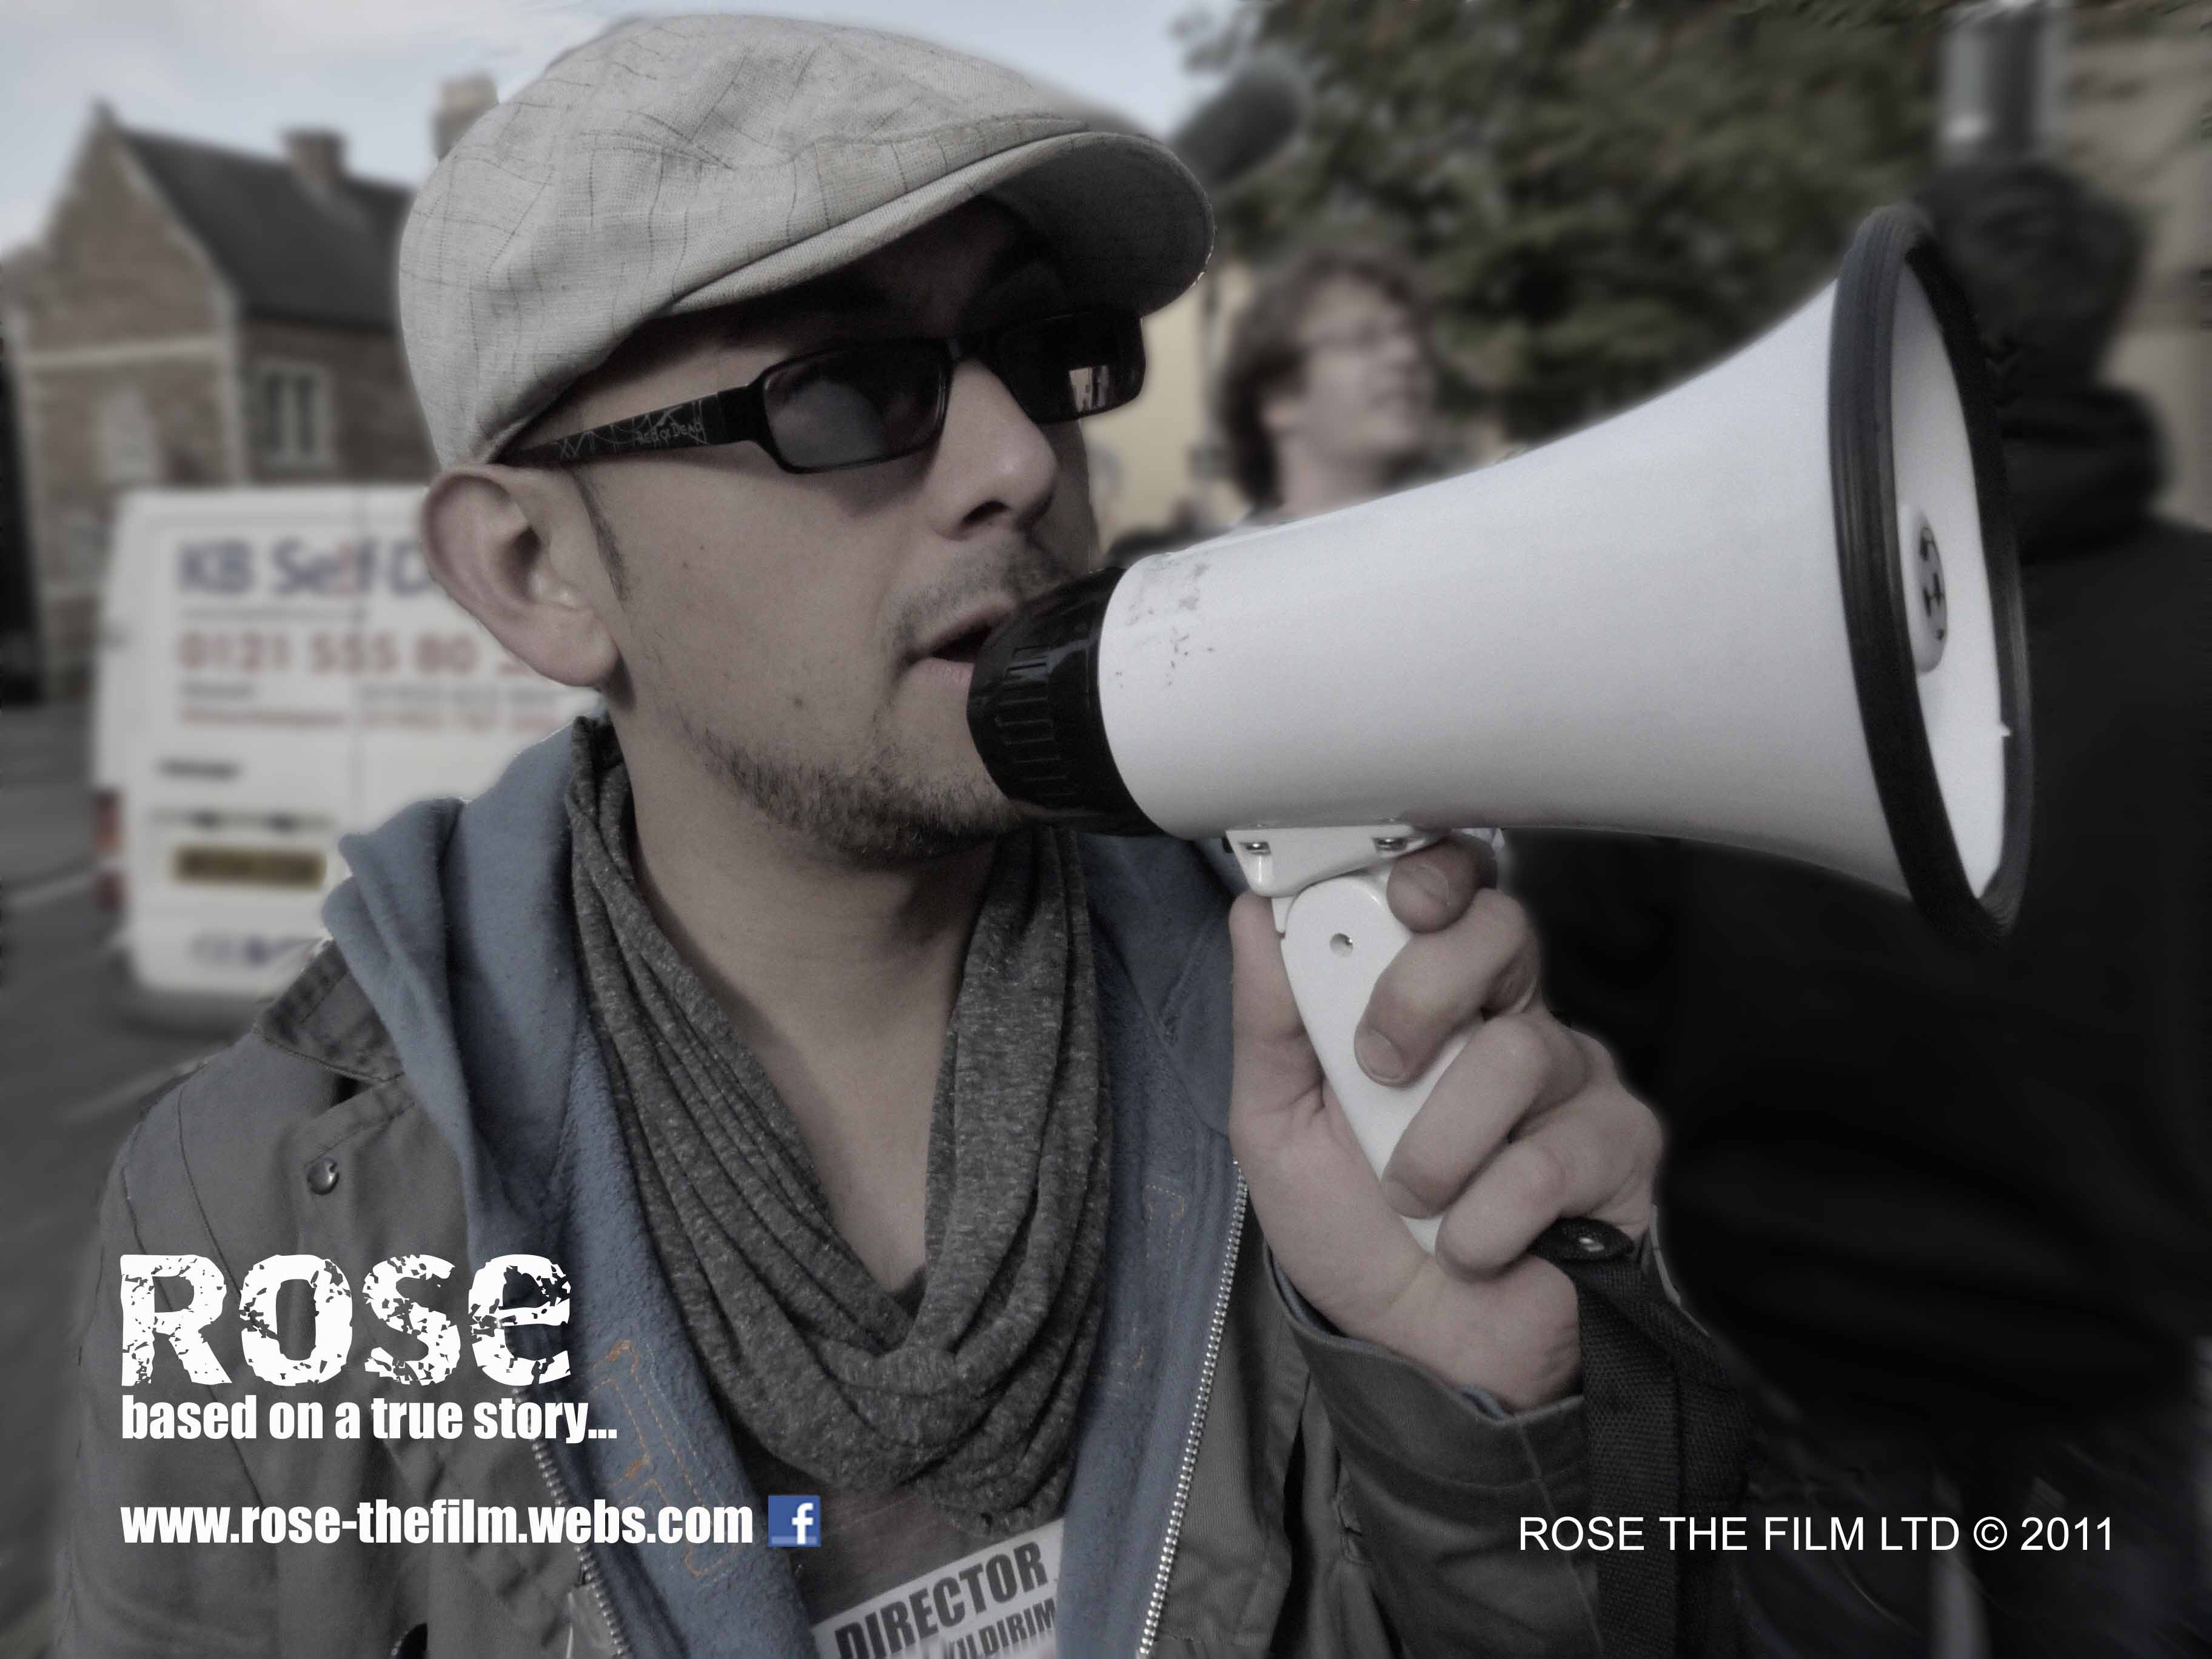 Production Stills on Set of Rose the Film.